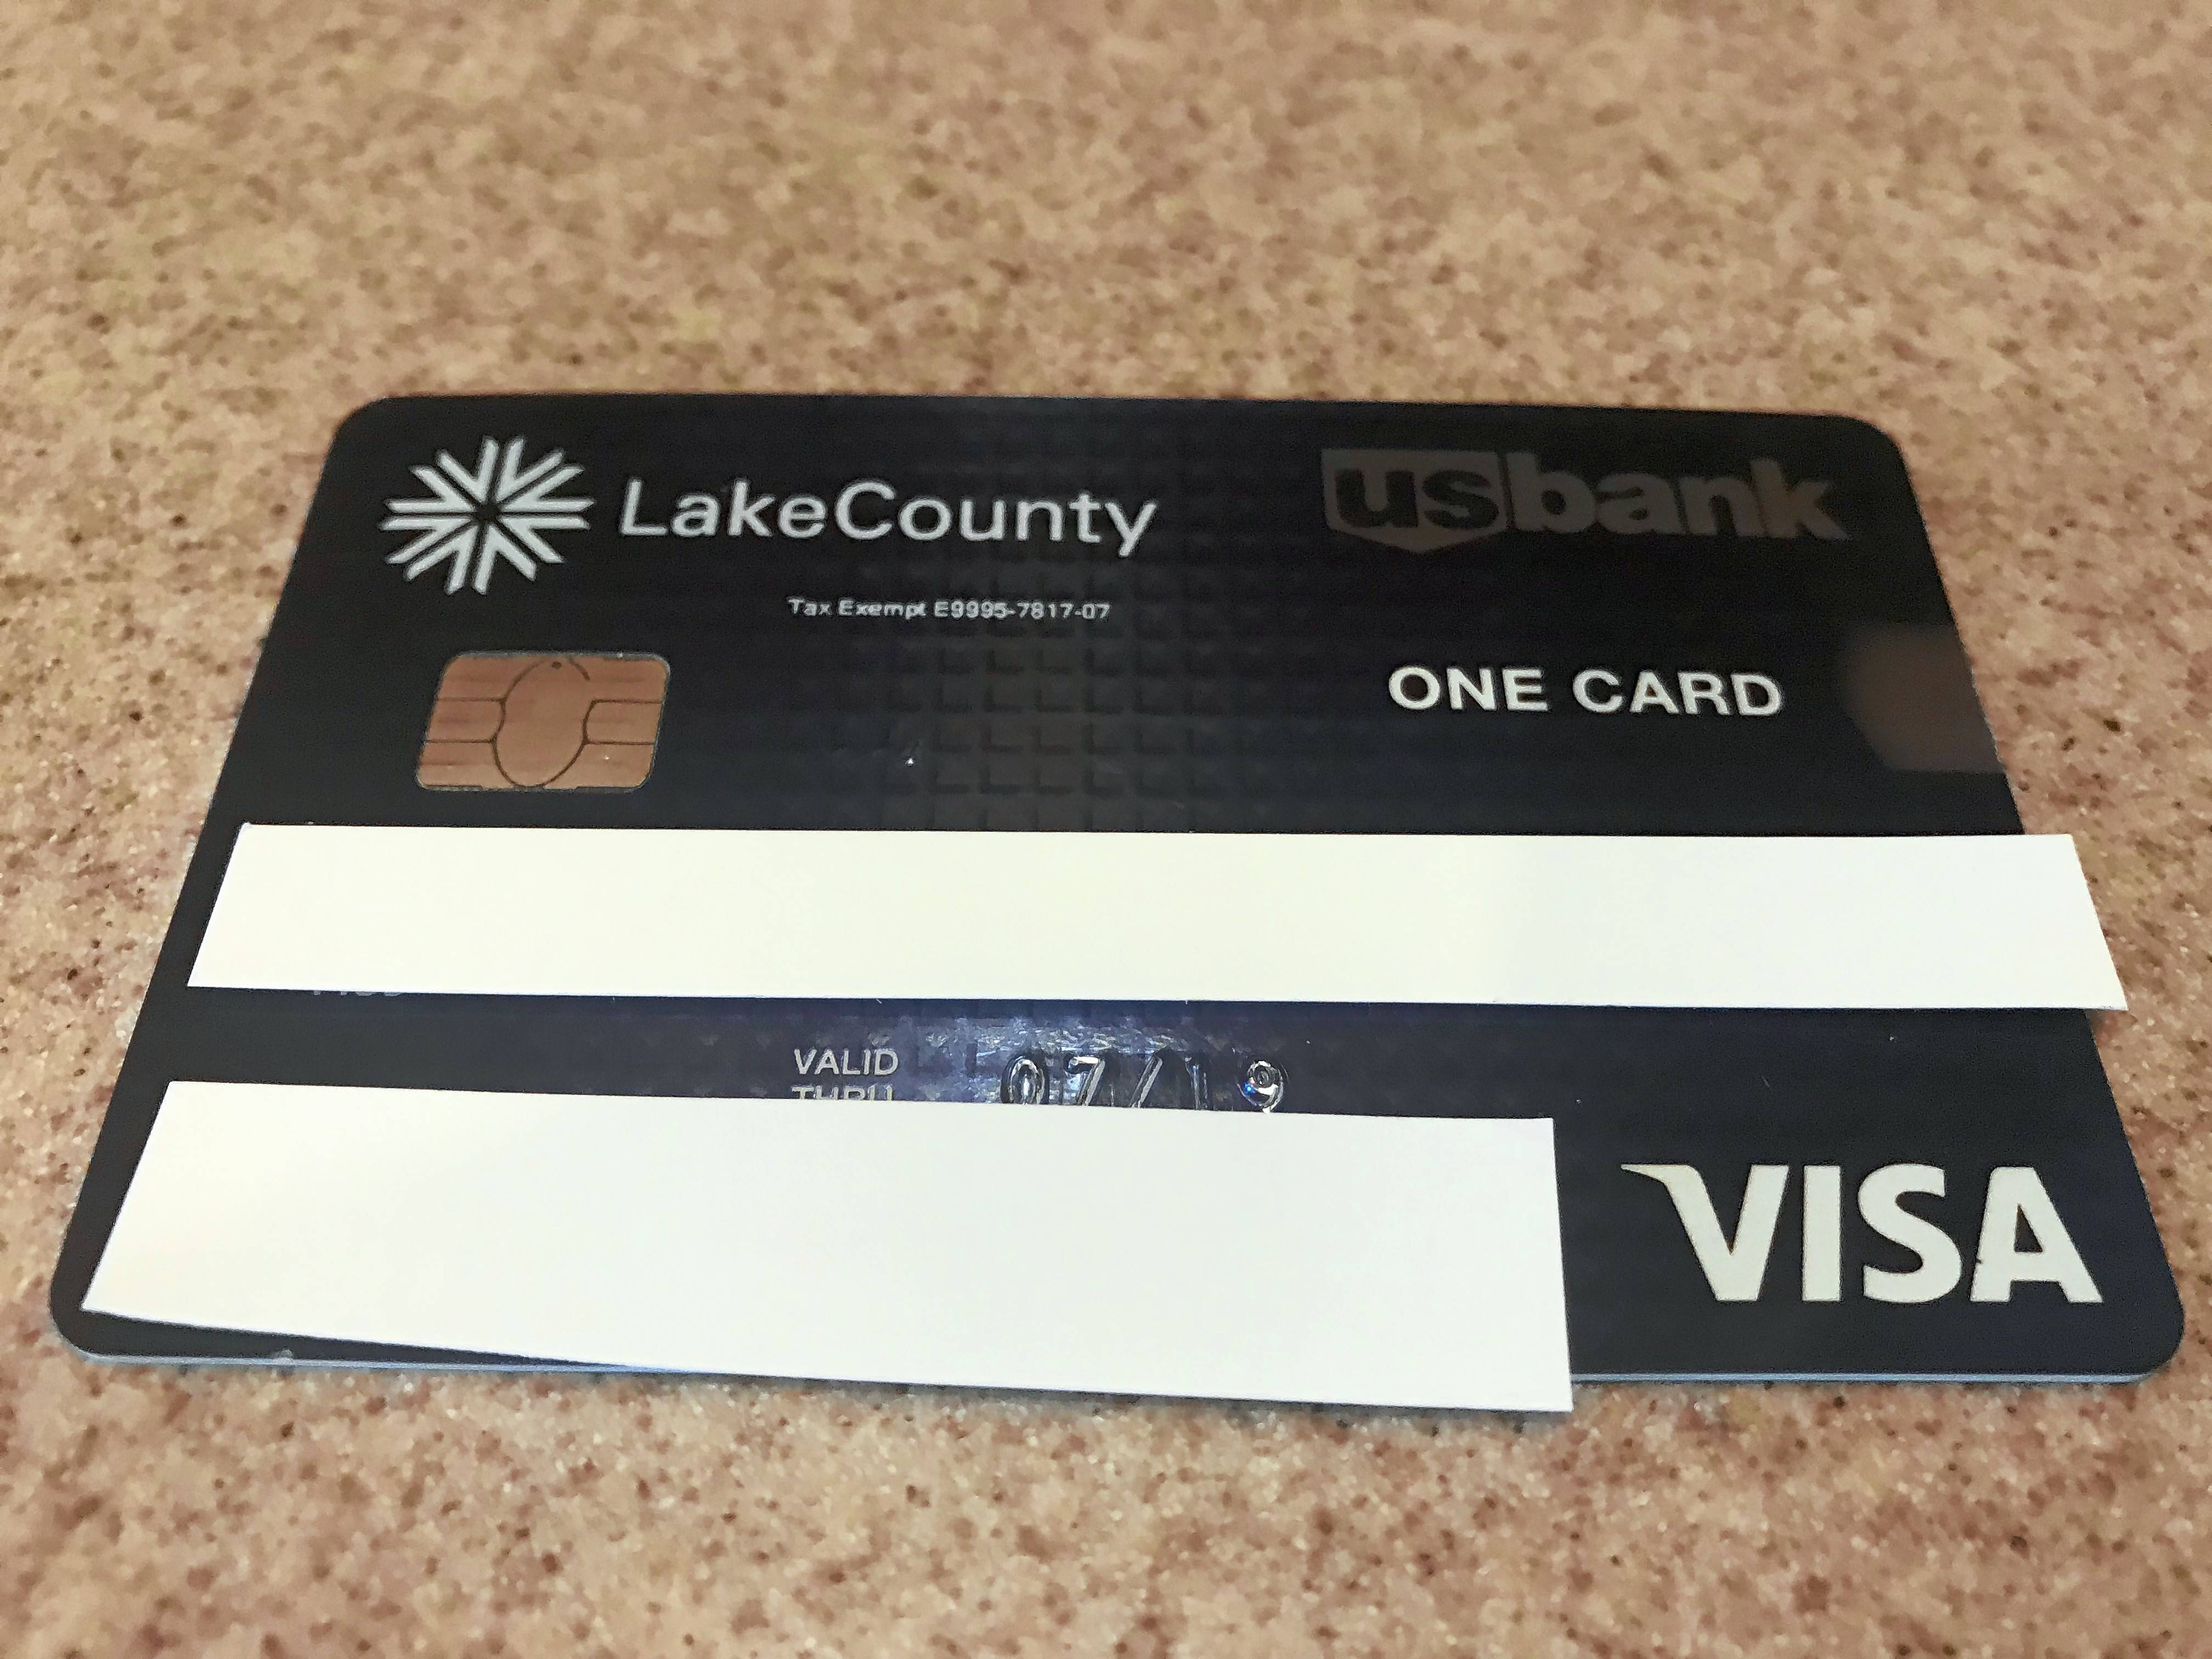 Lake County Board members voted to end use of credit cards like this one, called procurement cards, to access expense accounts.